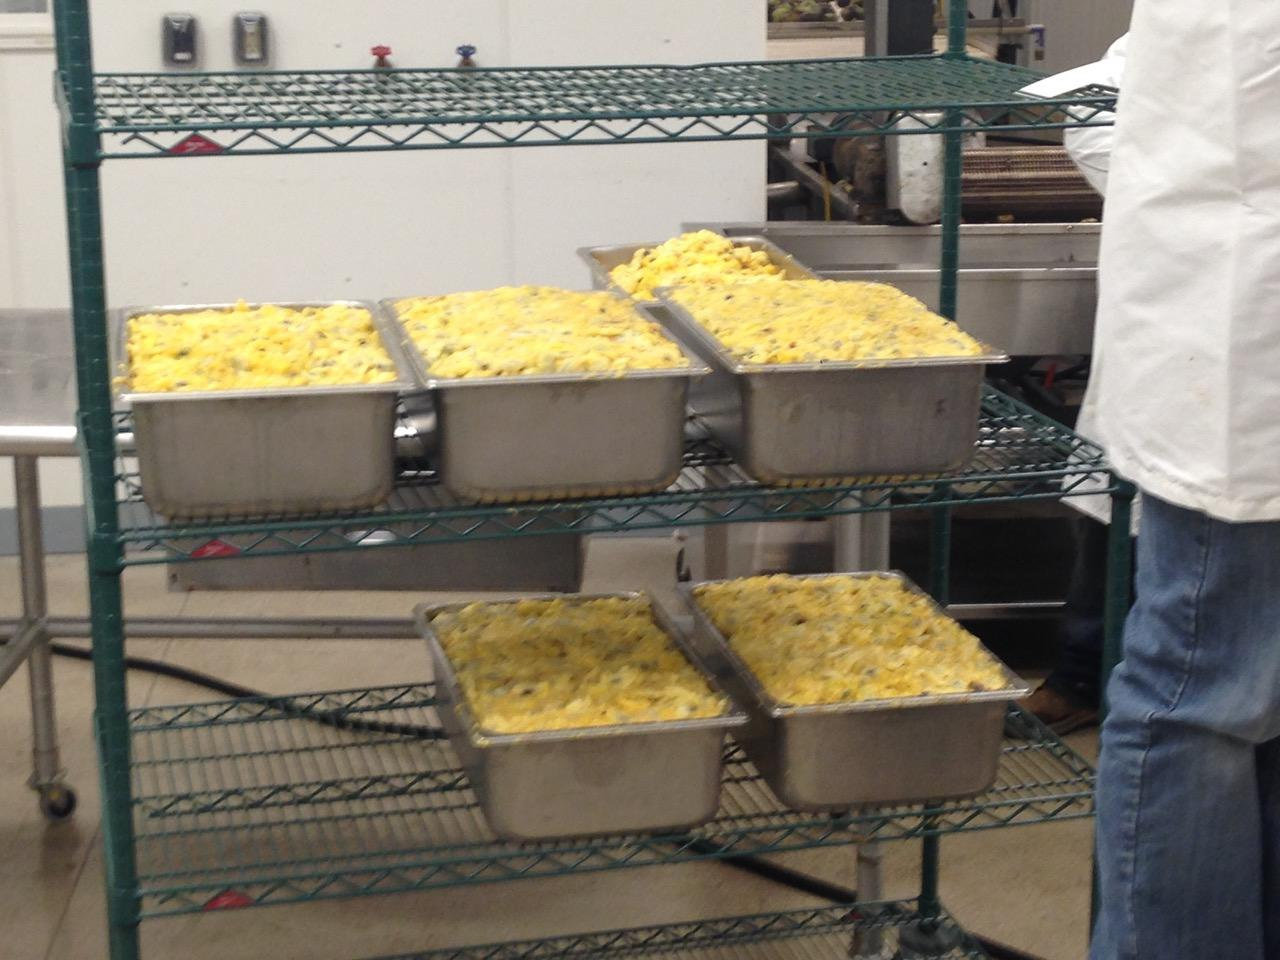 Pawpaw pulp sits in trays before being processed by fruit processing machine.